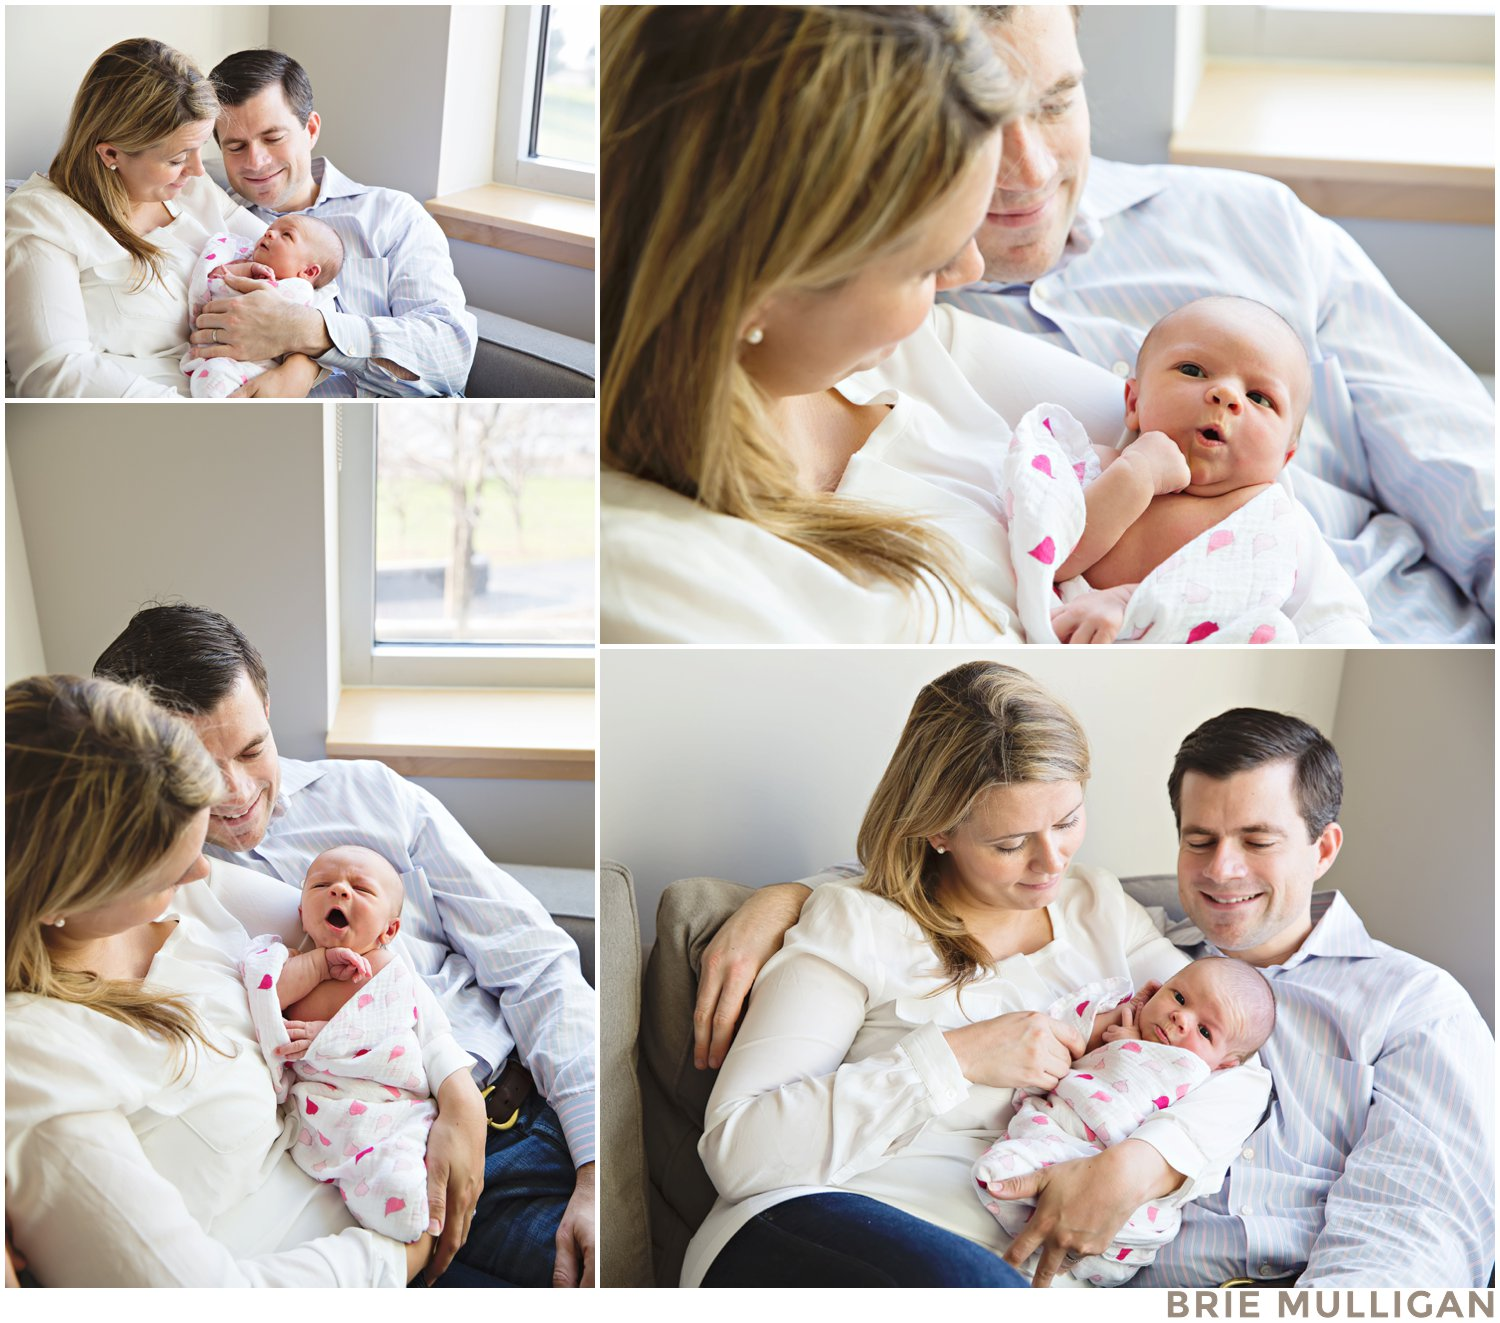 Brie-Mulligan-Lifestyle-Family-and-Newborn-Photographer-Brooklyn-NYC-NJ_0260.jpg